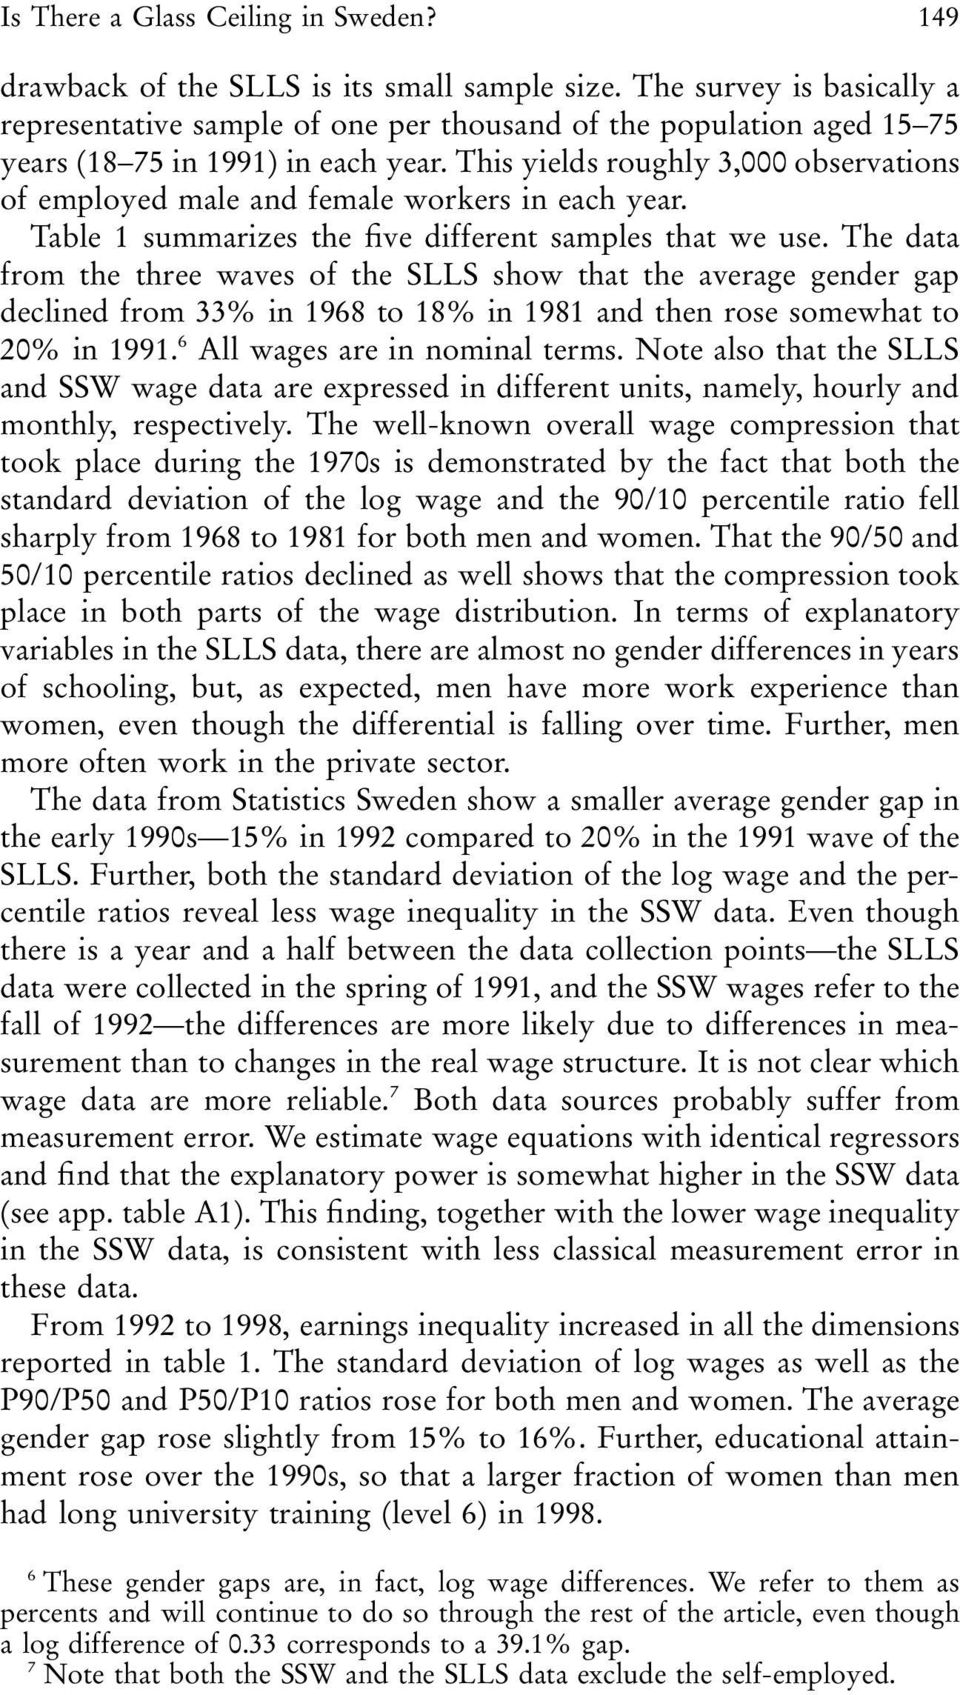 This yields roughly 3,000 observations of employed male and female workers in each year. Table 1 summarizes the five different samples that we use.